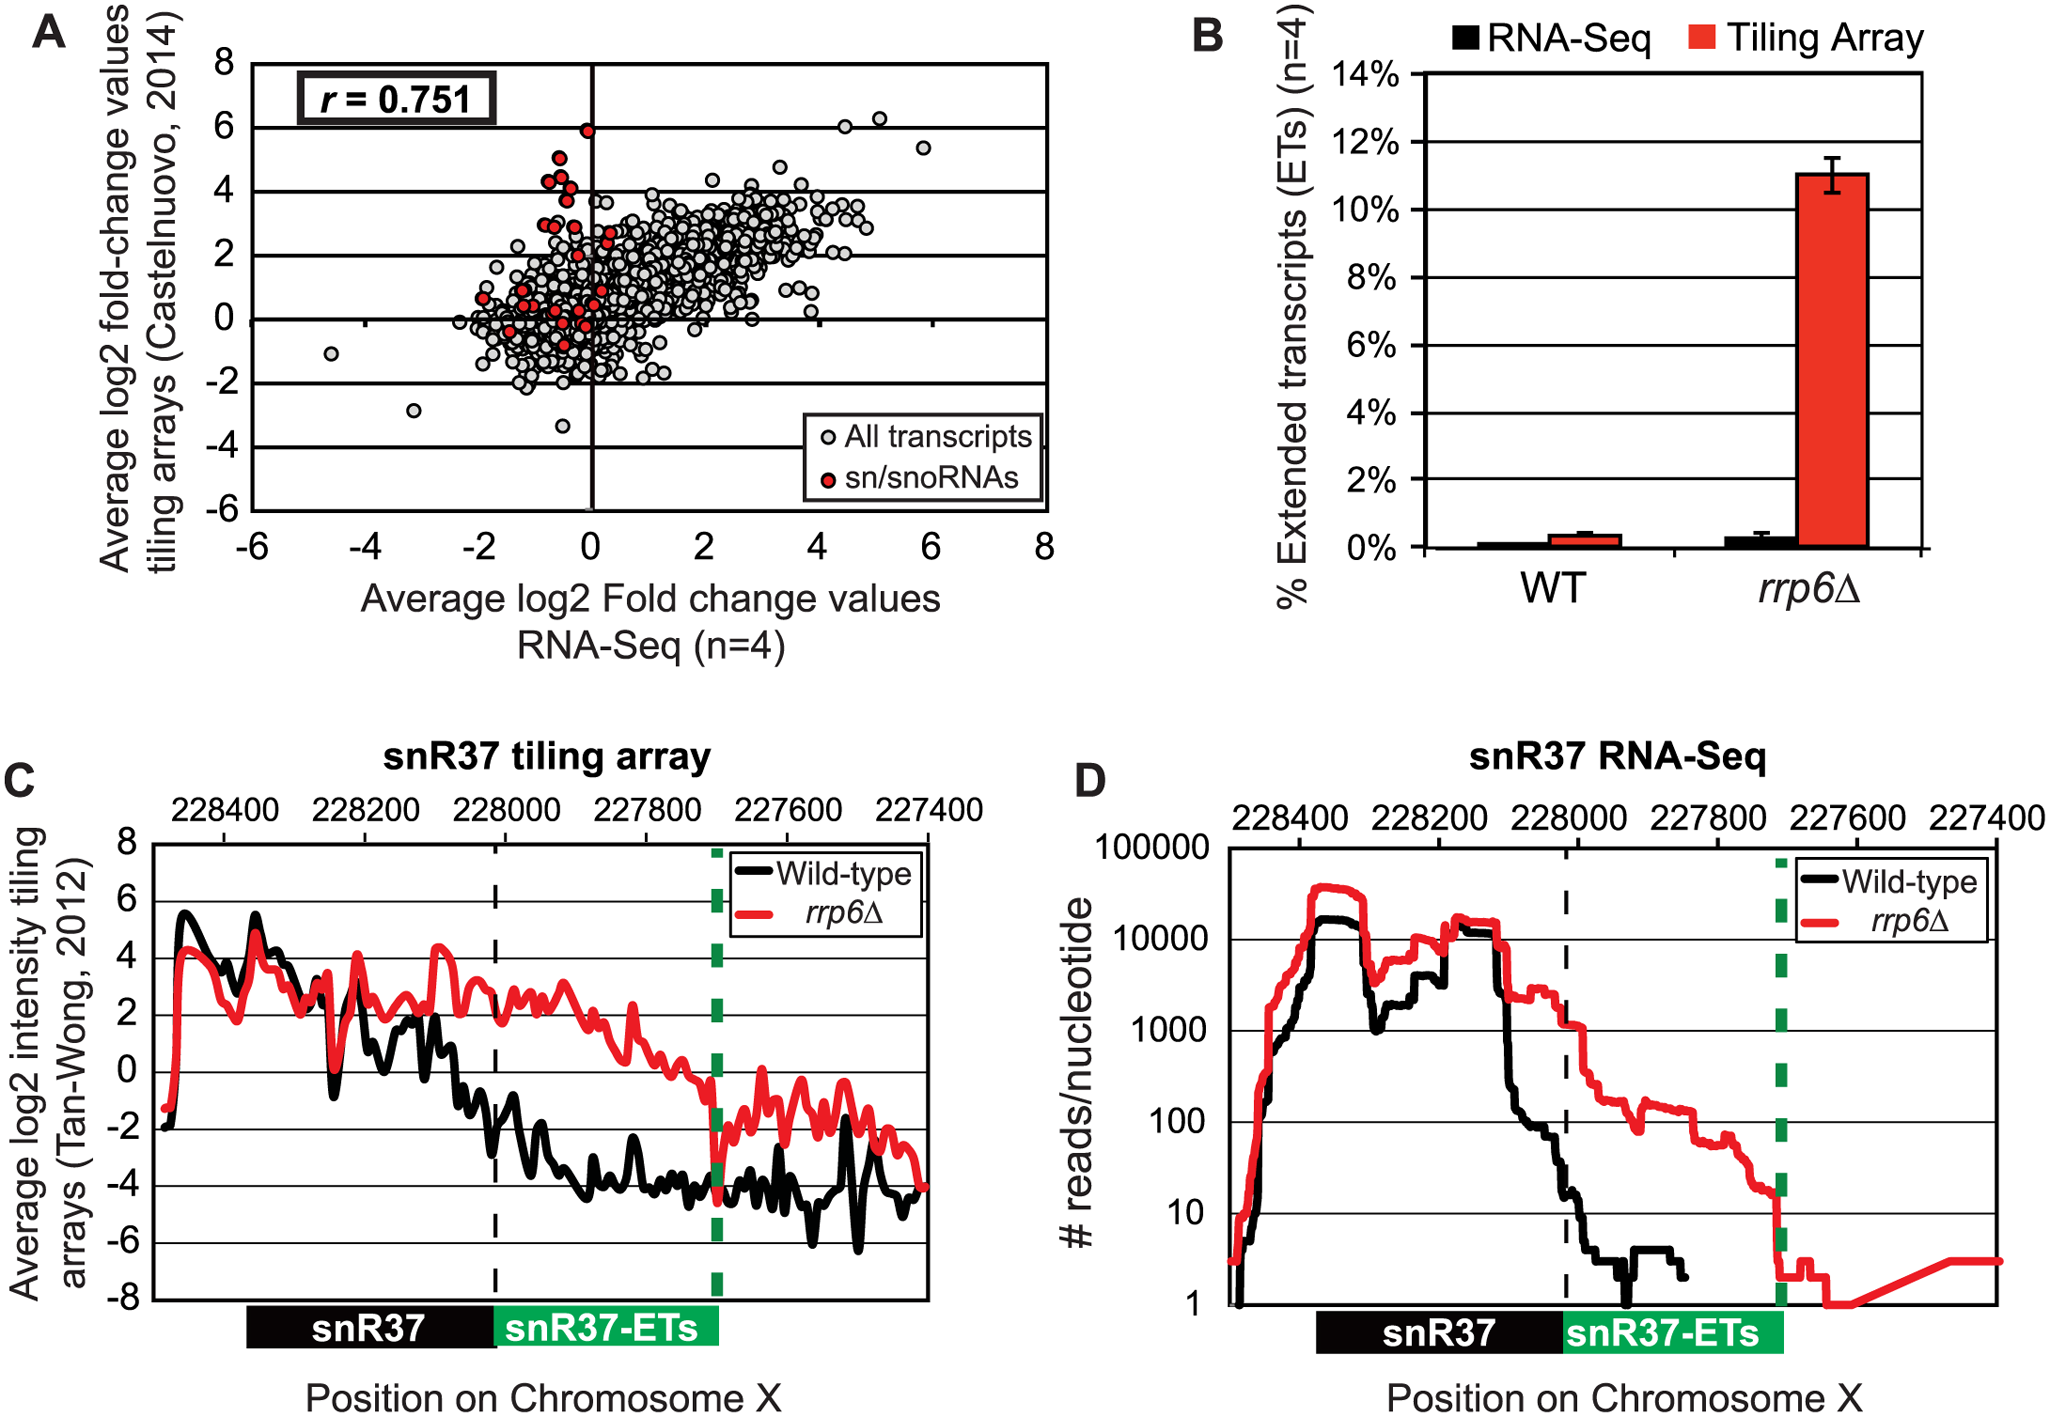 Comparison of highly abundant sn/snoRNA transcripts from <i>rrp6Δ</i> and WT strains obtained through tiling array or RNA sequencing.